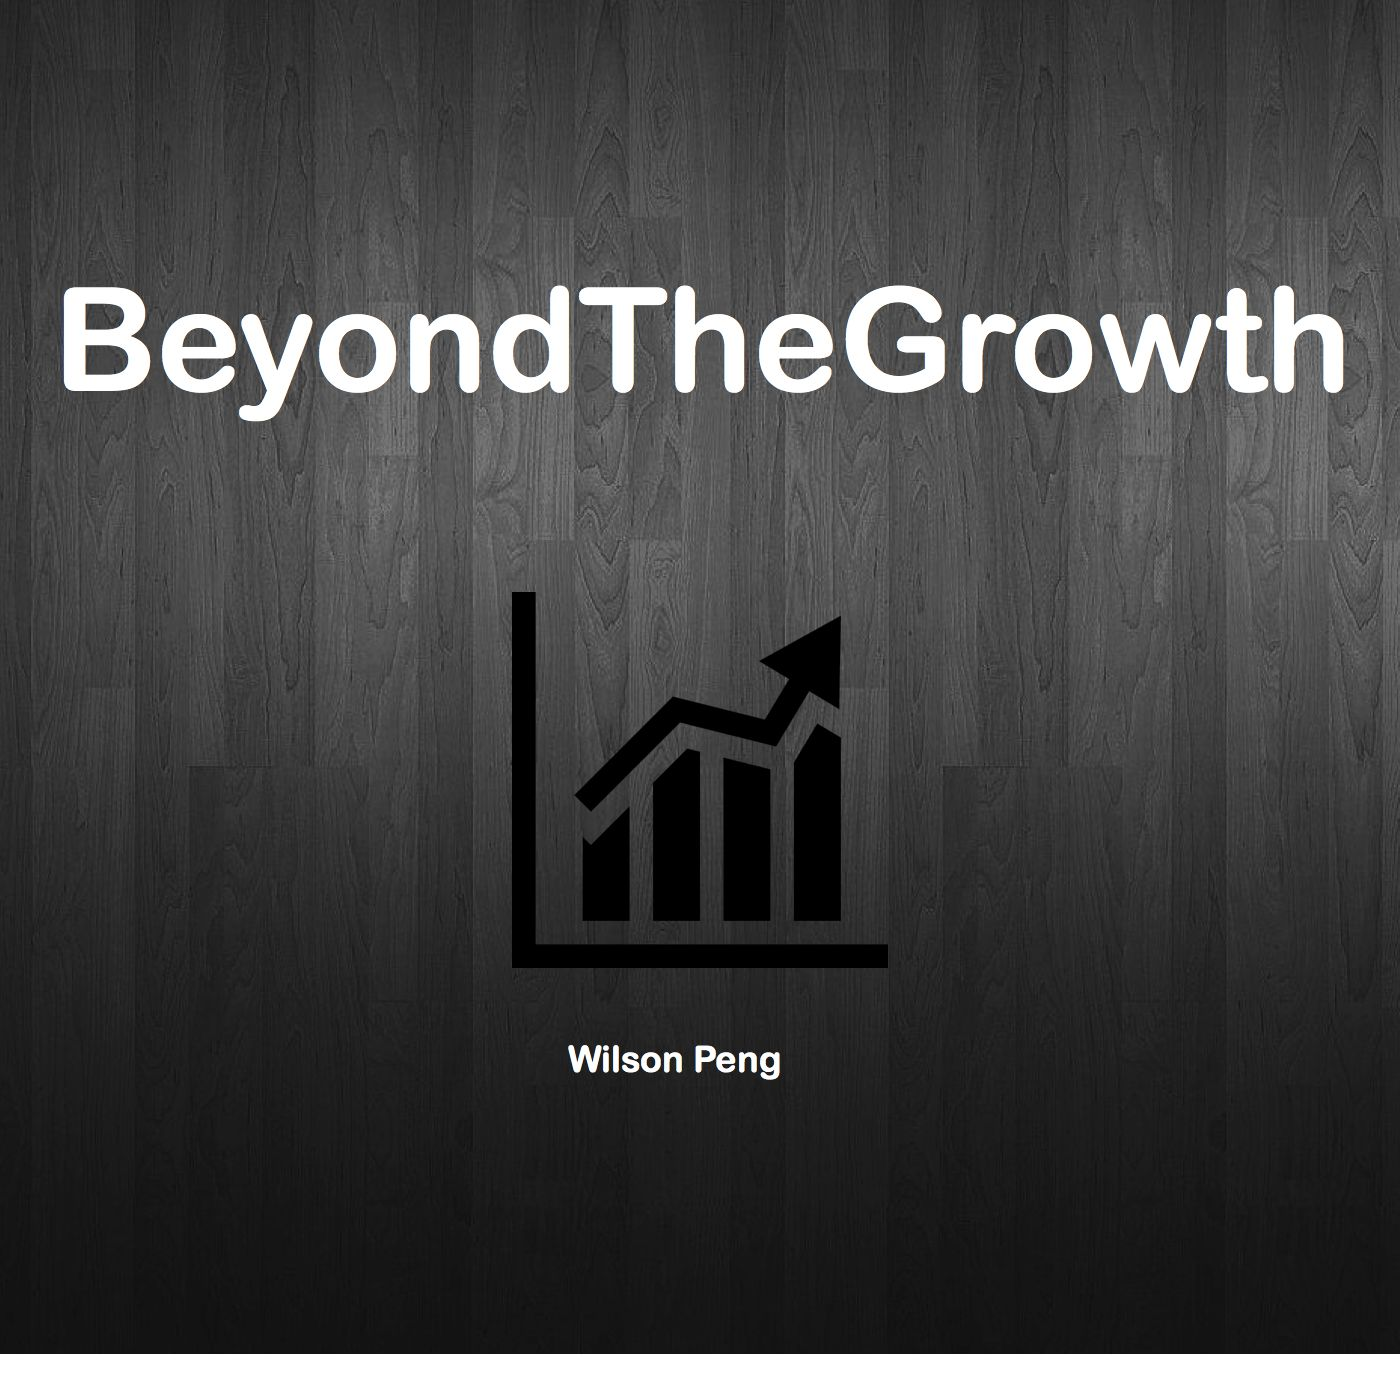 BeyondTheGrowth Podcast